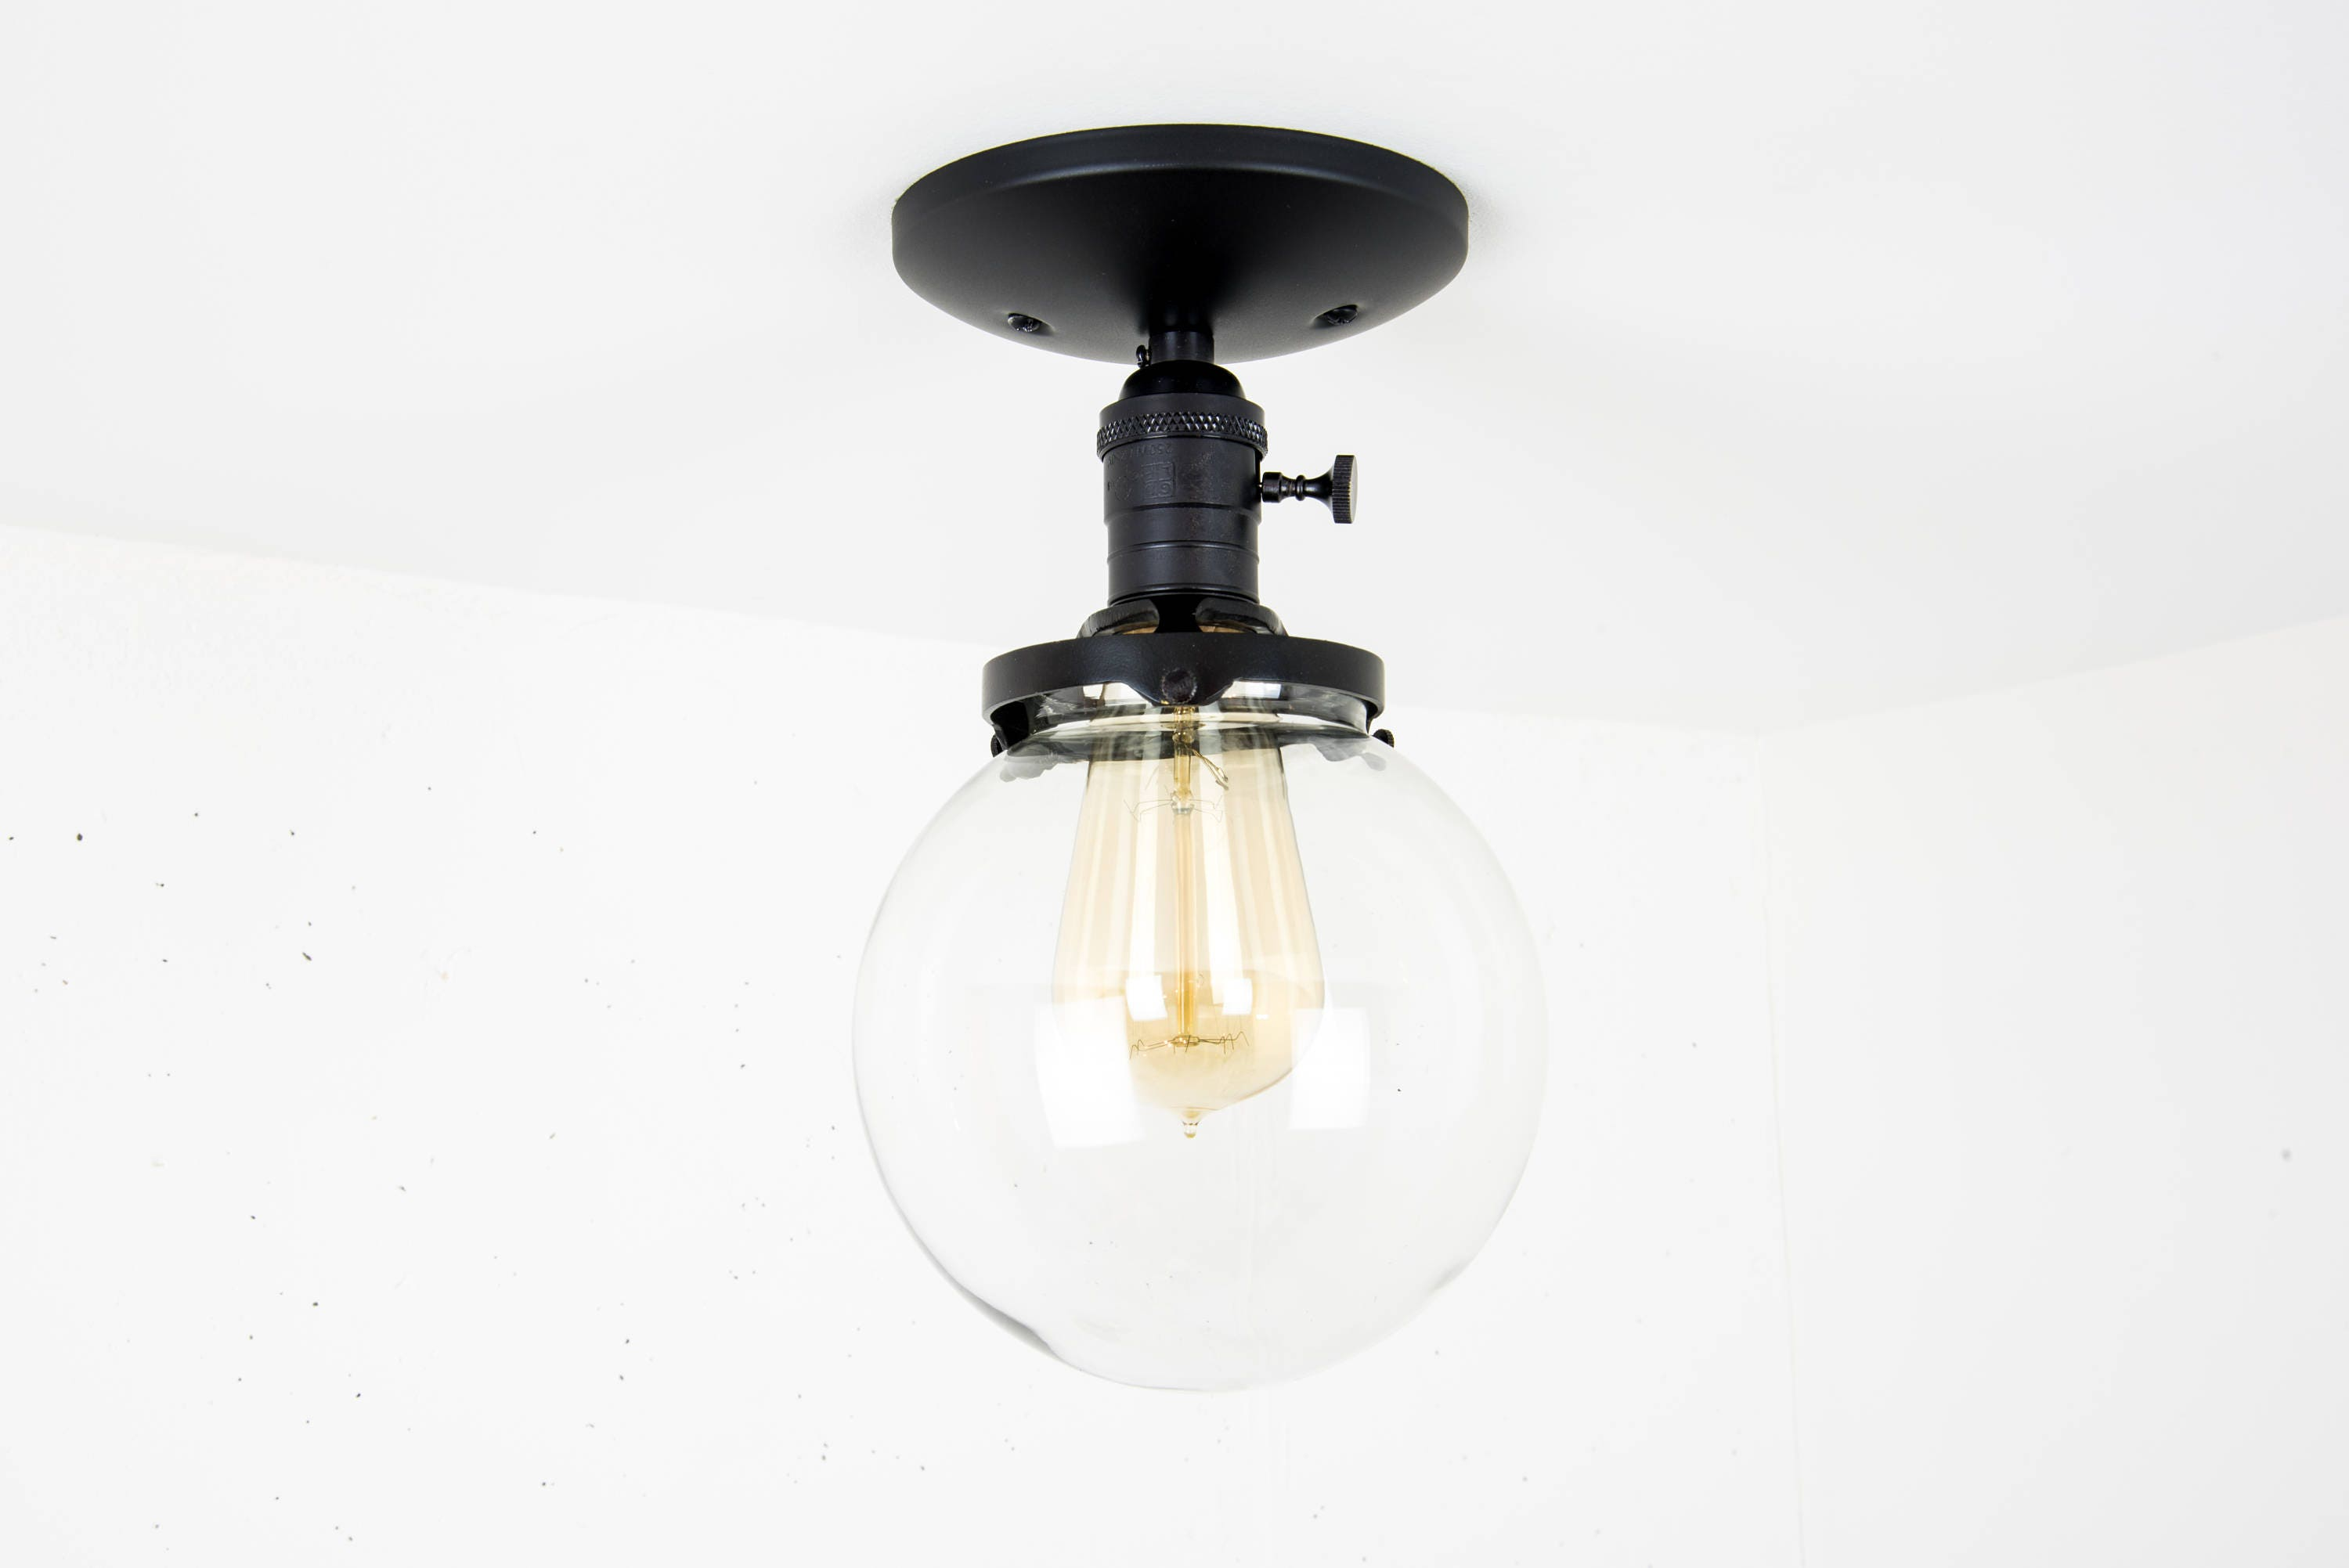 Globe ceiling light black light fixture ceiling mounted flush globe ceiling light black light fixture ceiling mounted flush mount glass globe light modern ceiling light semi flush mount lamp aloadofball Image collections